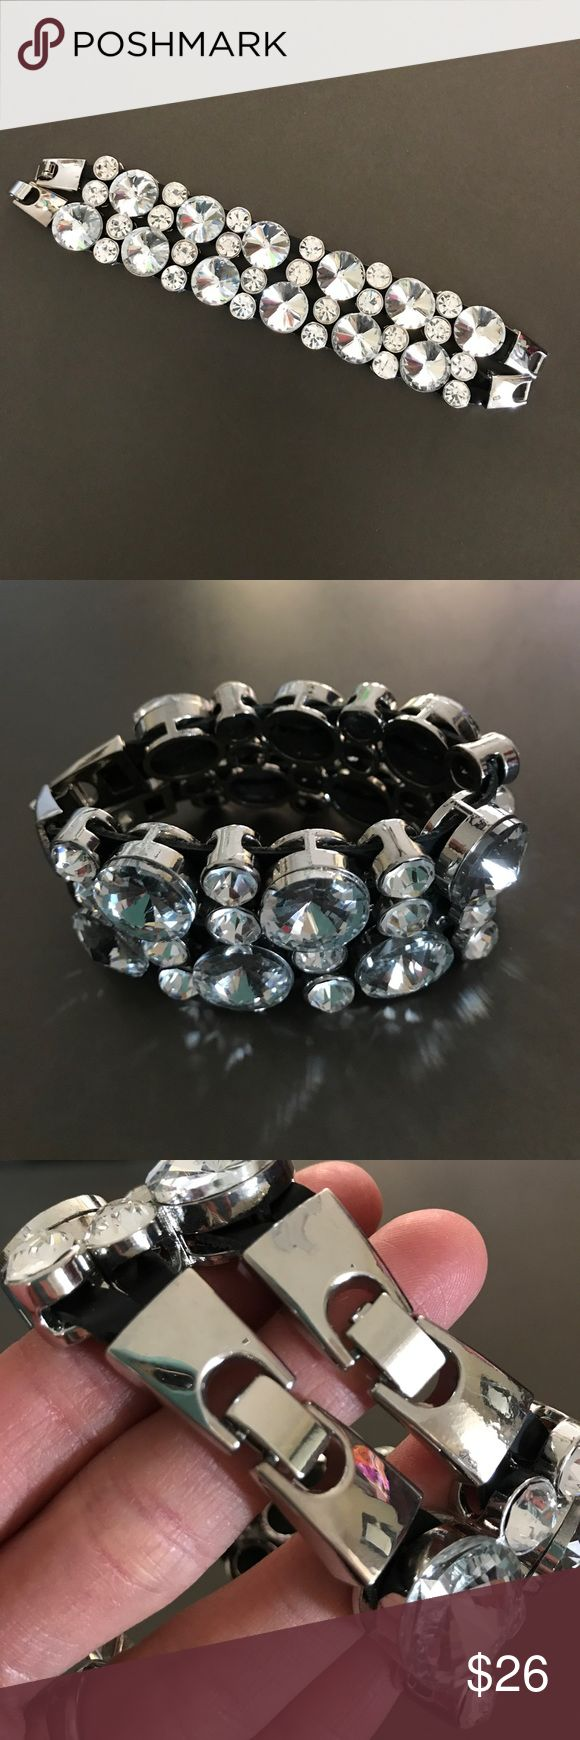 Oversized Rhinestone Silver Bracelet Beautiful Faux Stone Bracelet with 2 Clasps - Perfect for Prom, Wedding or Special Occasion - Looks 😍 in Pictures! Only Worn 2X Apricot Lane Boutique Jewelry Bracelets